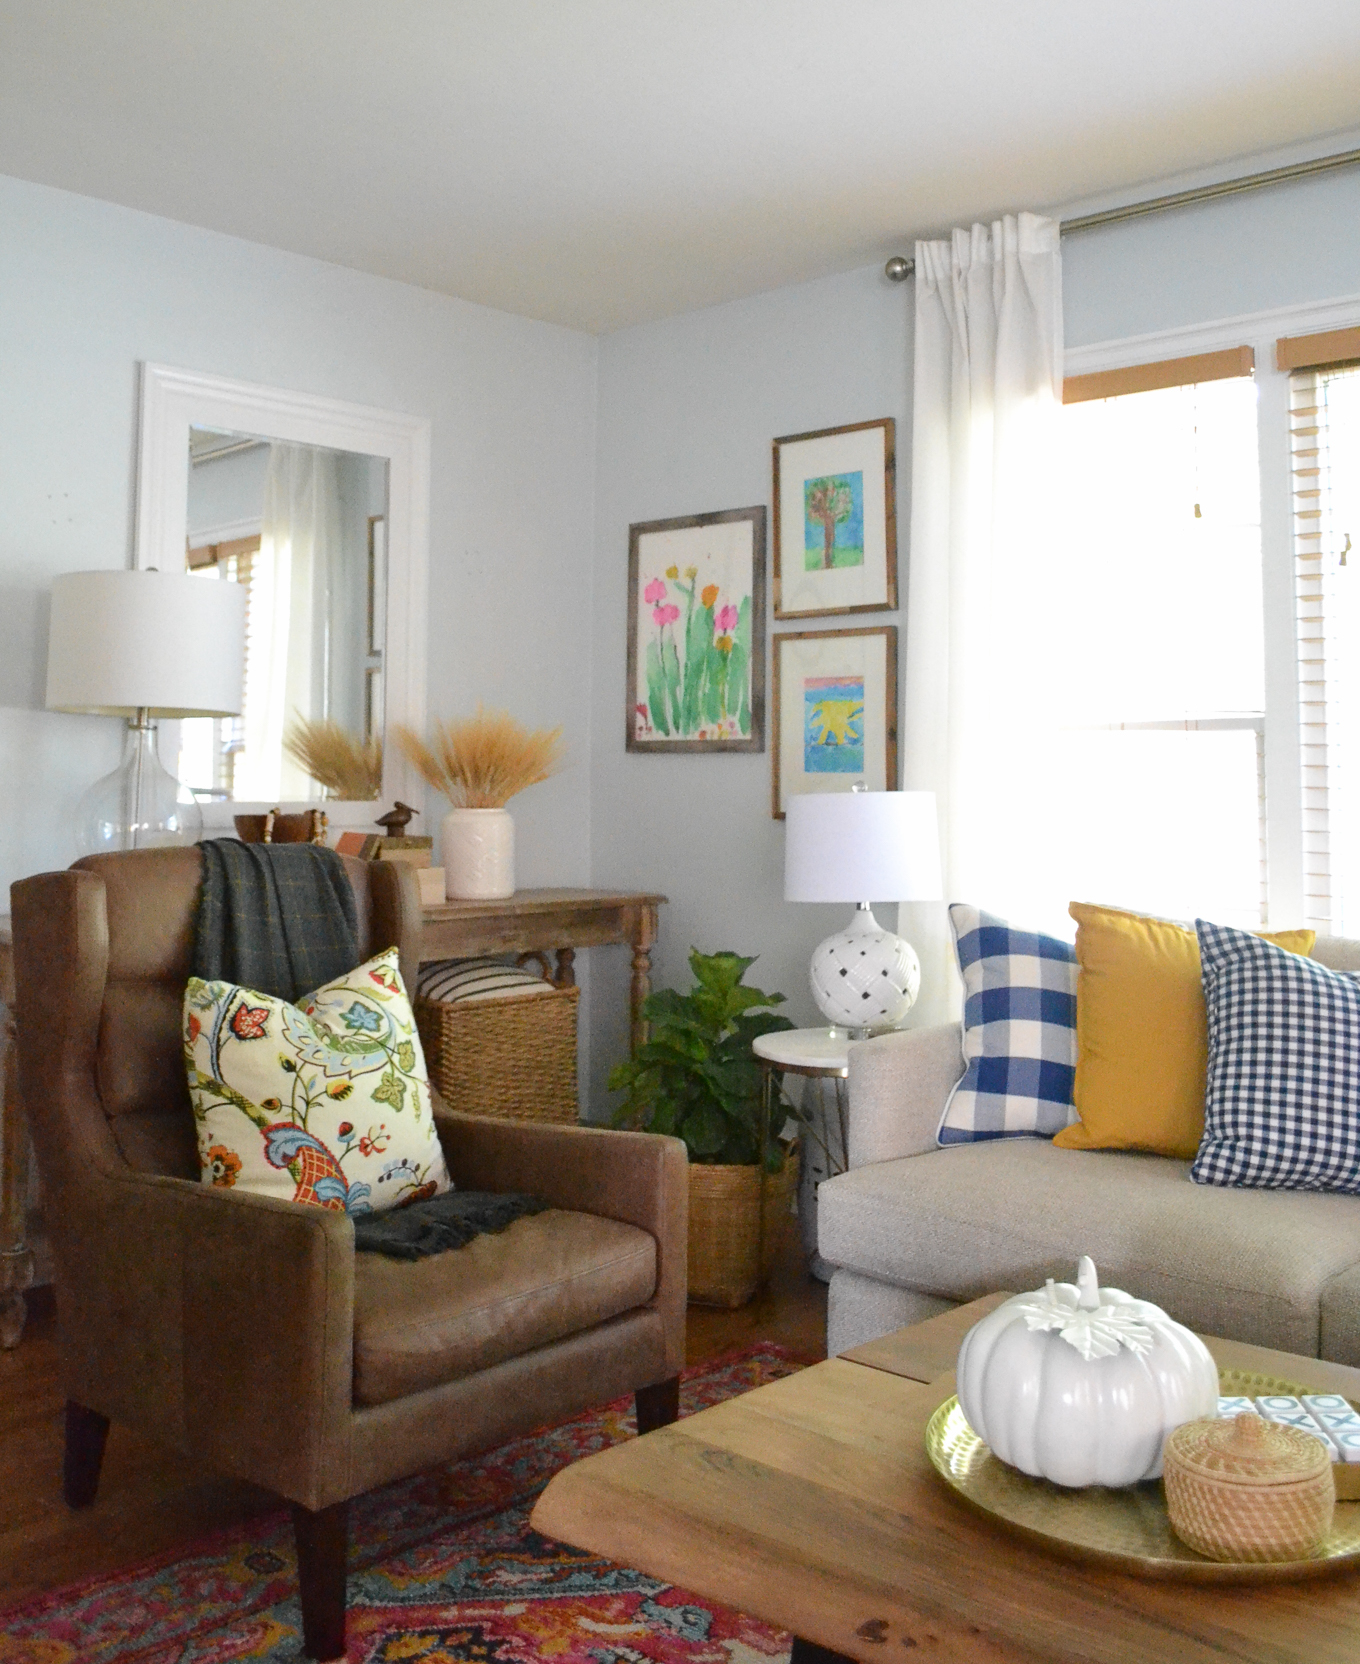 Living Room Decorating Ideas: Living Room Decorating Ideas For Fall